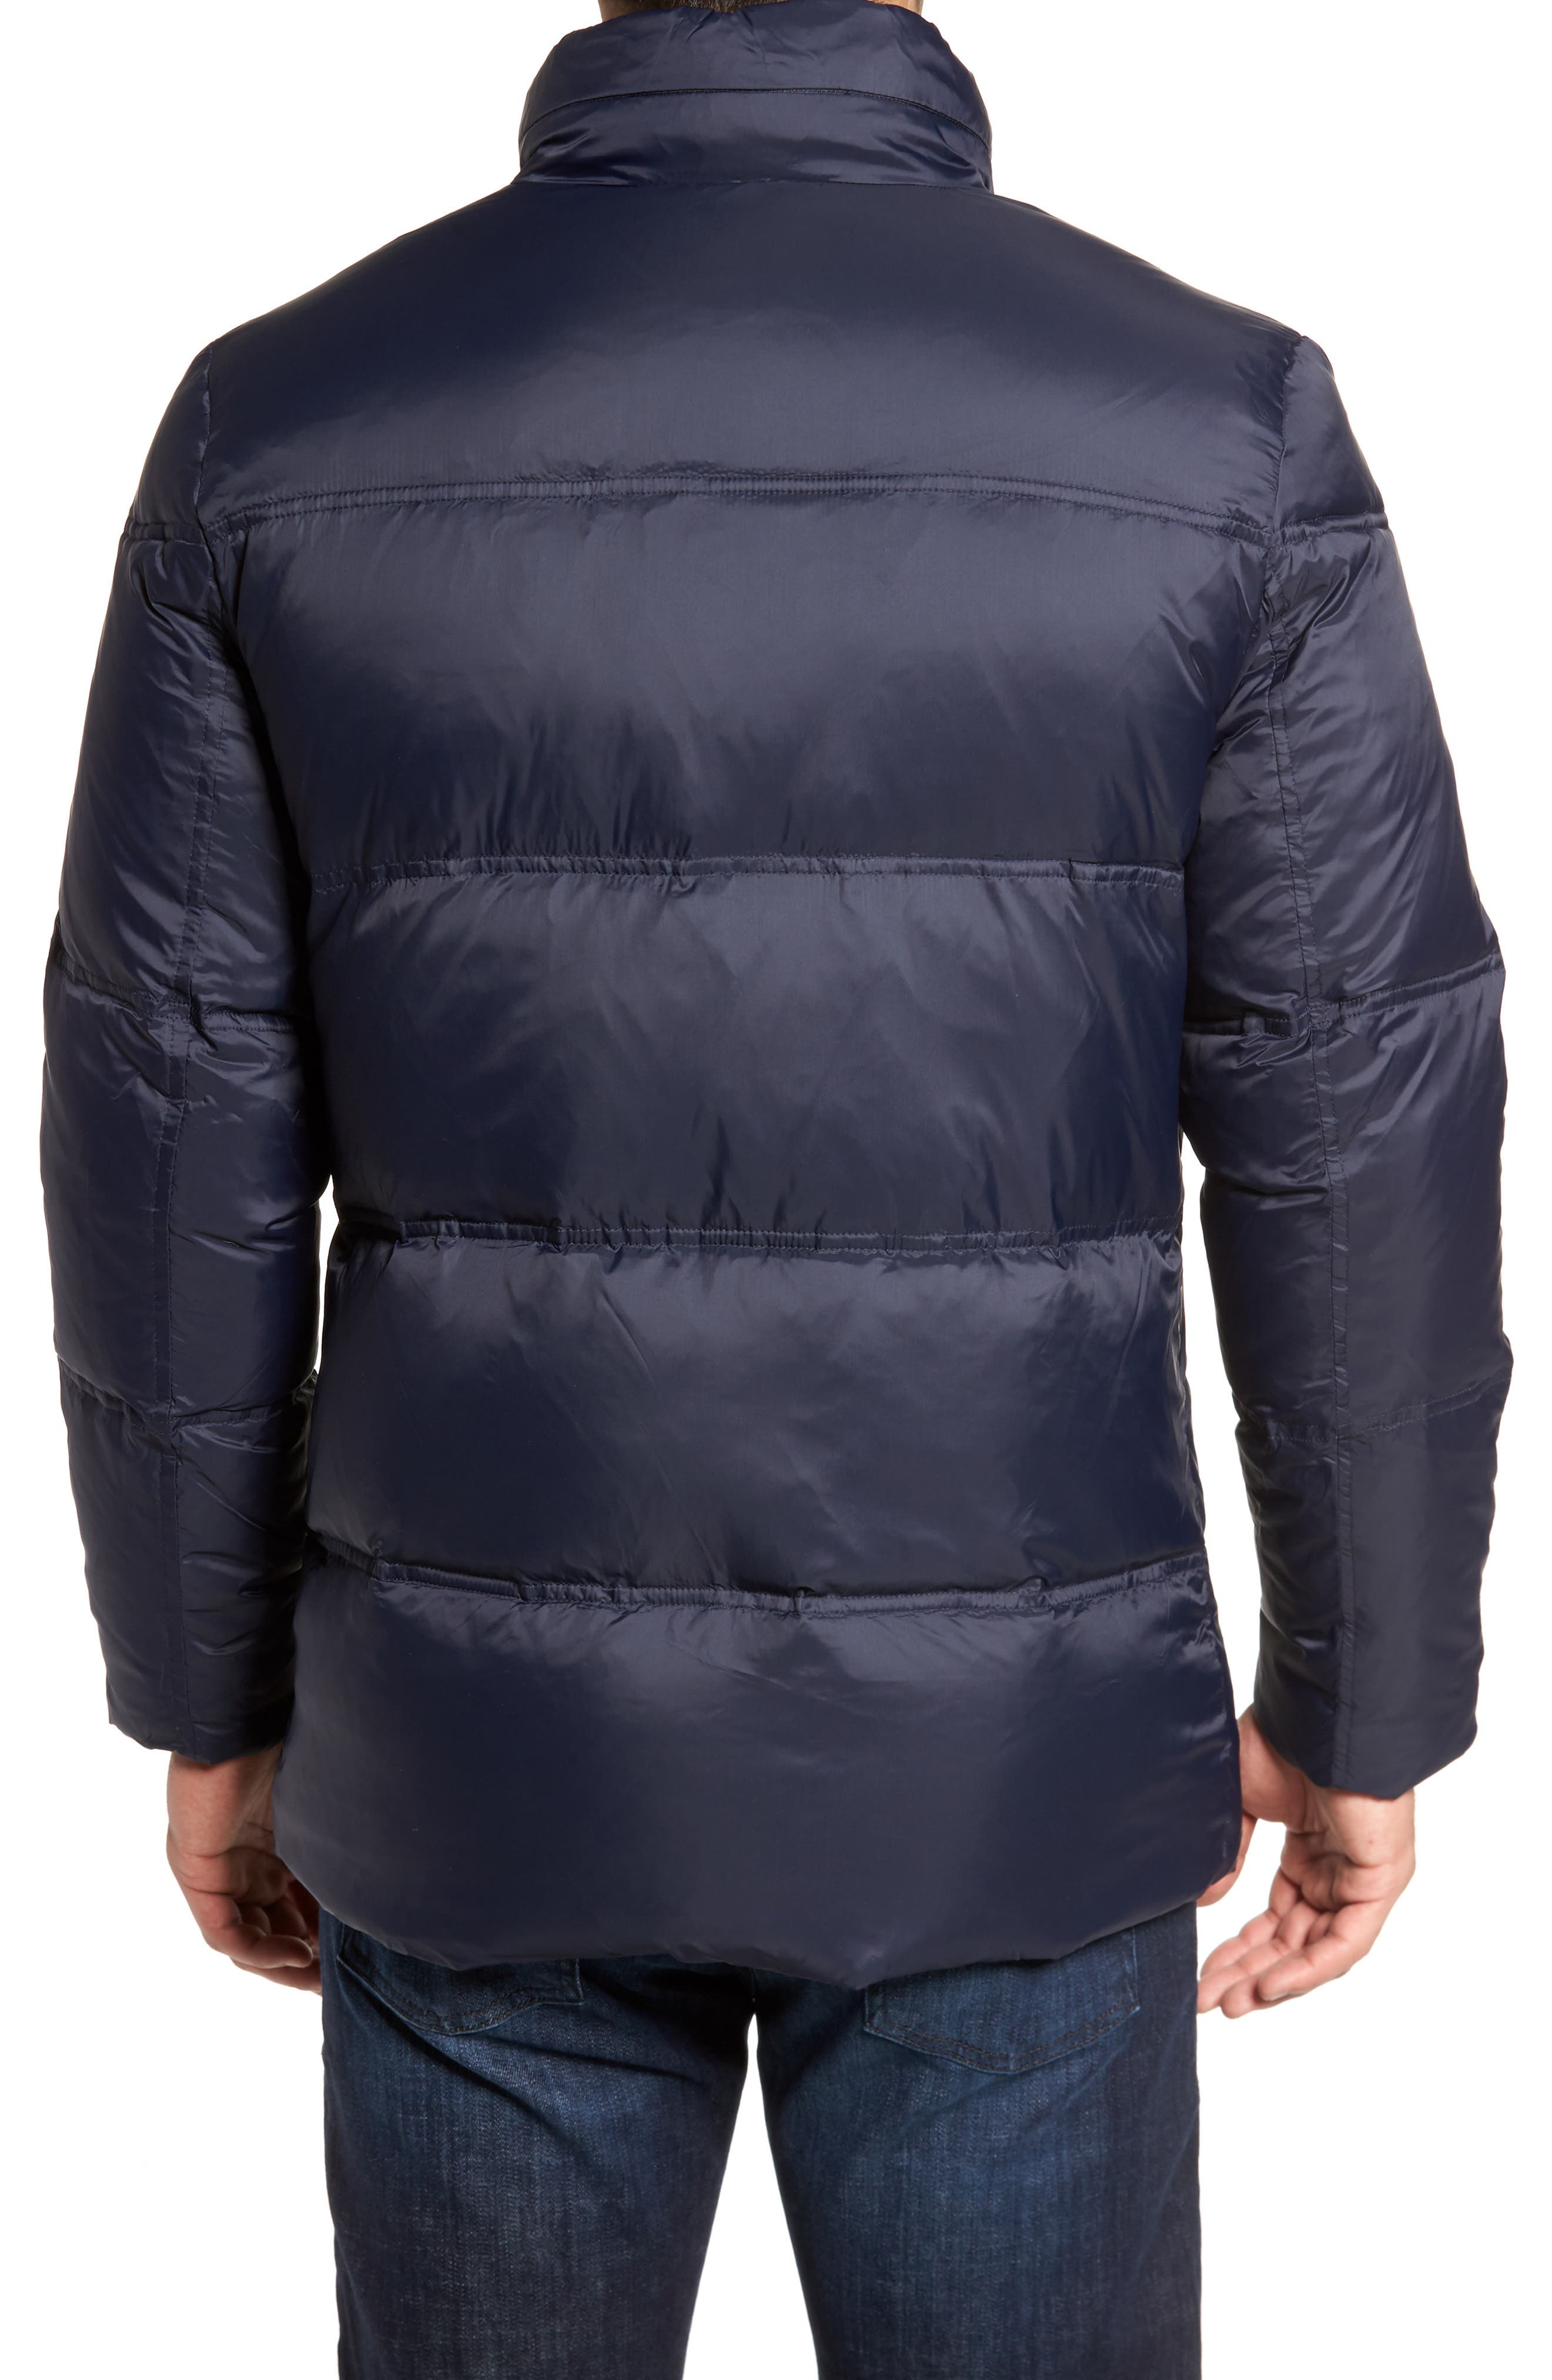 Quilted Jacket with Convertible Neck Pillow,                             Alternate thumbnail 2, color,                             NAVY